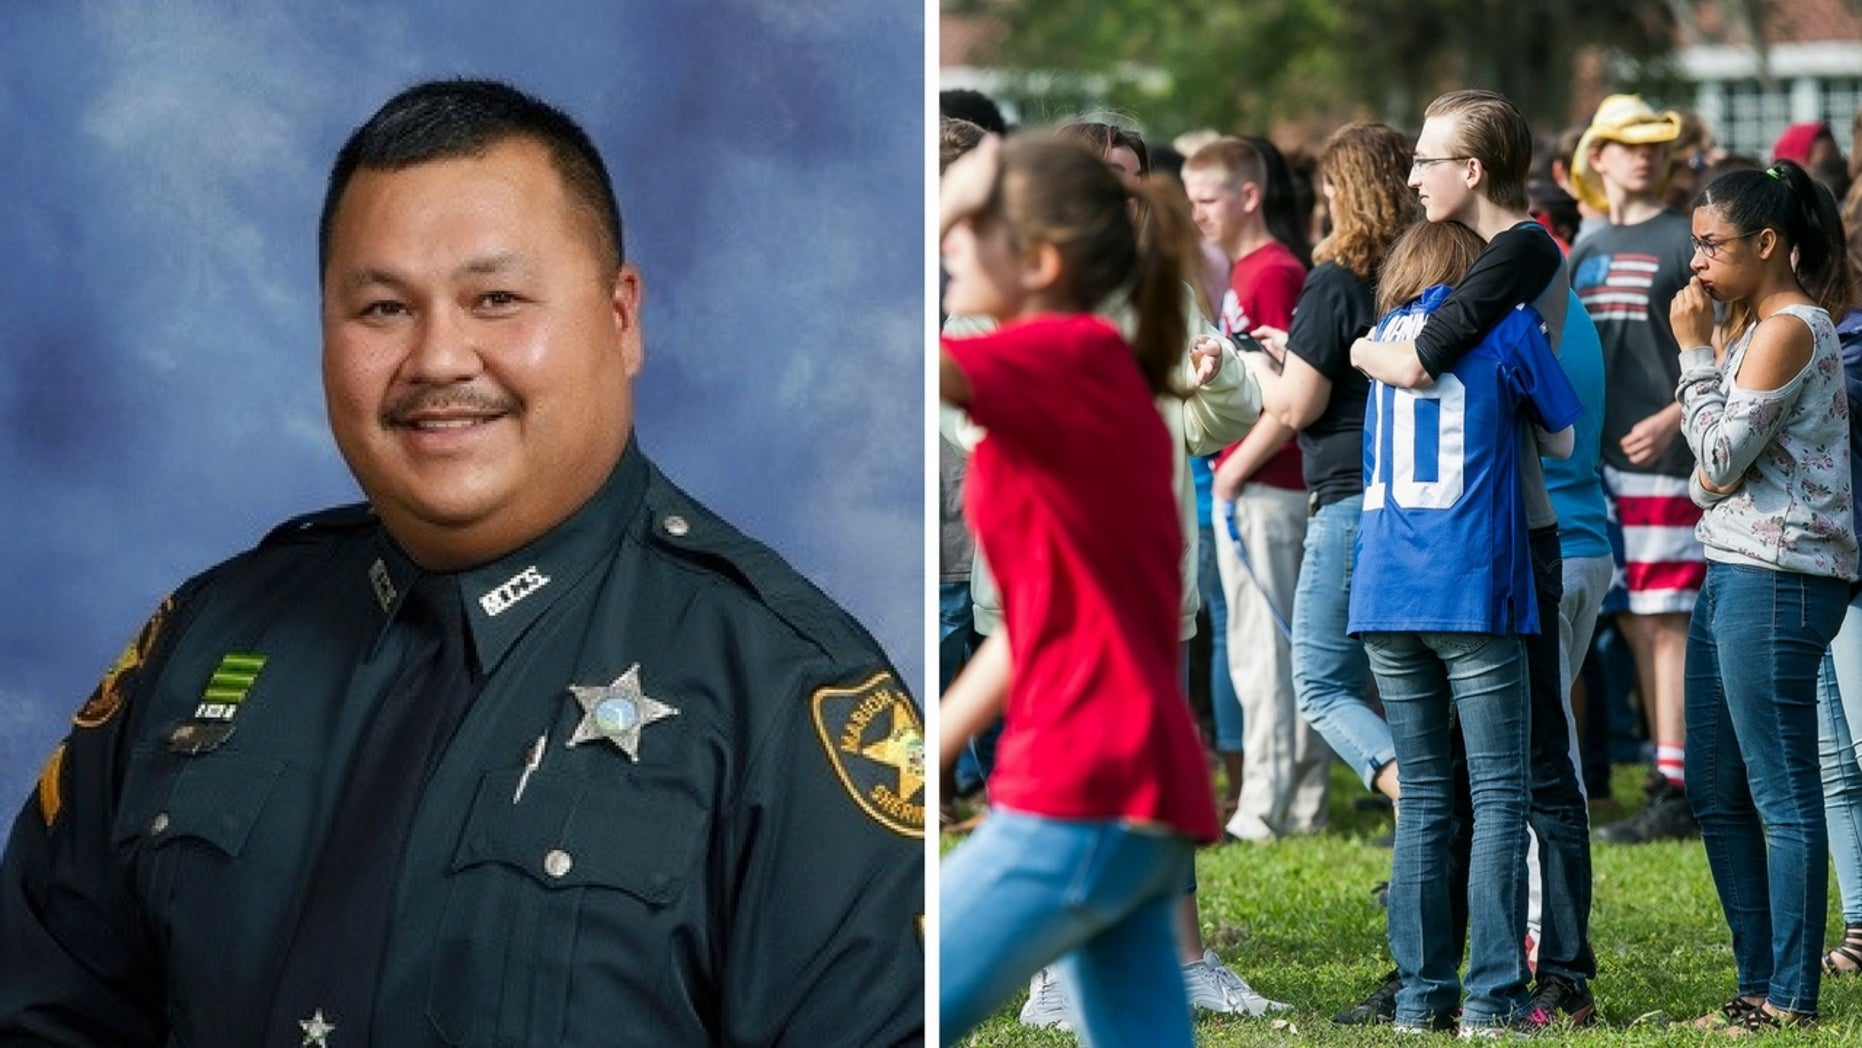 """Sheriff James """"Jimmy"""" Long was hailed a hero for his quick response to a shooting at a Florida high school."""